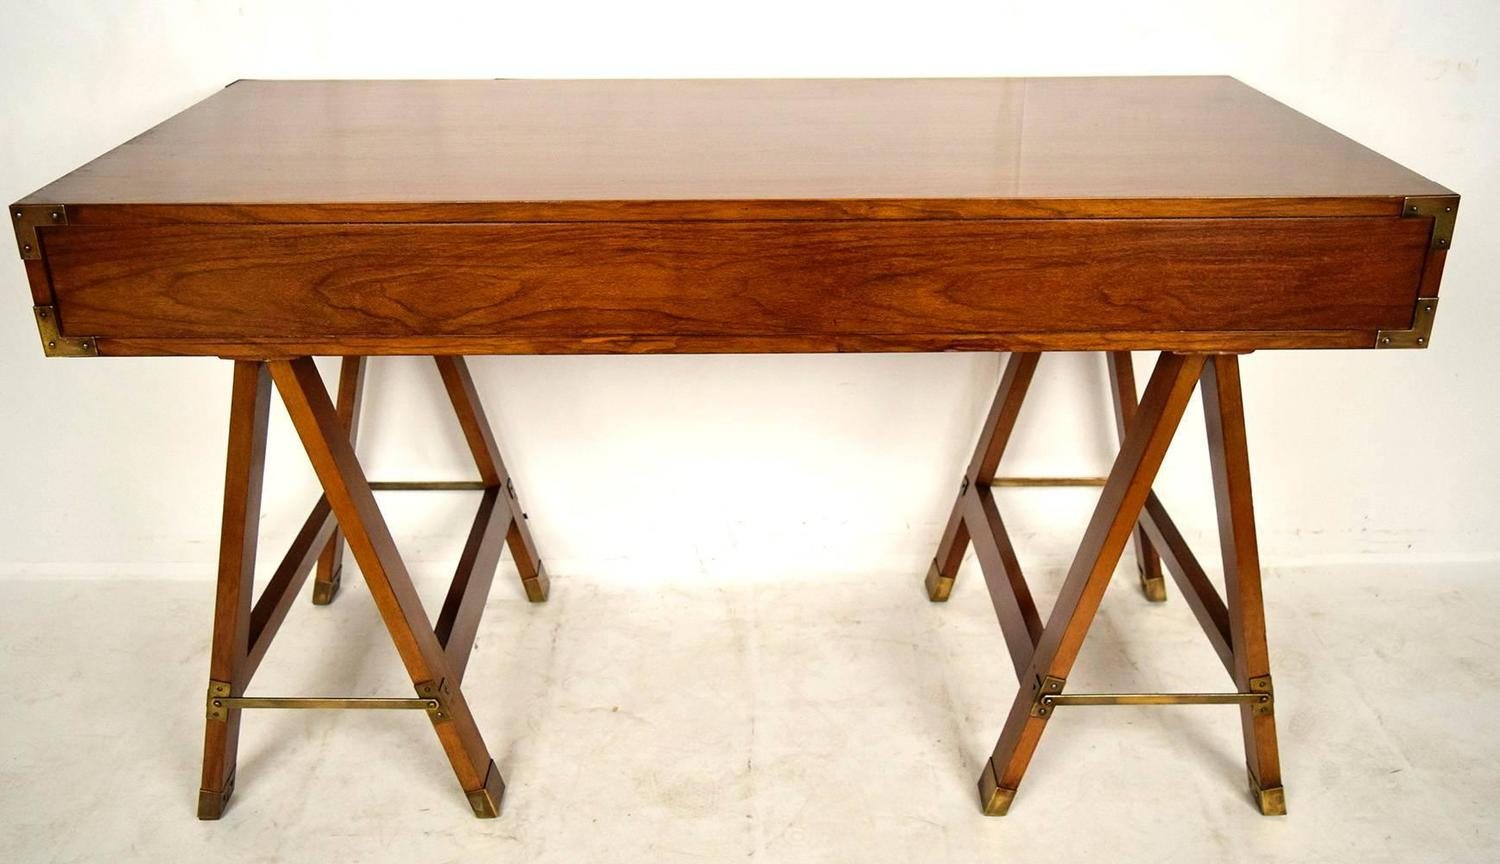 Campaign desk with sawhorse legs for sale at 1stdibs Sawhorse desk legs